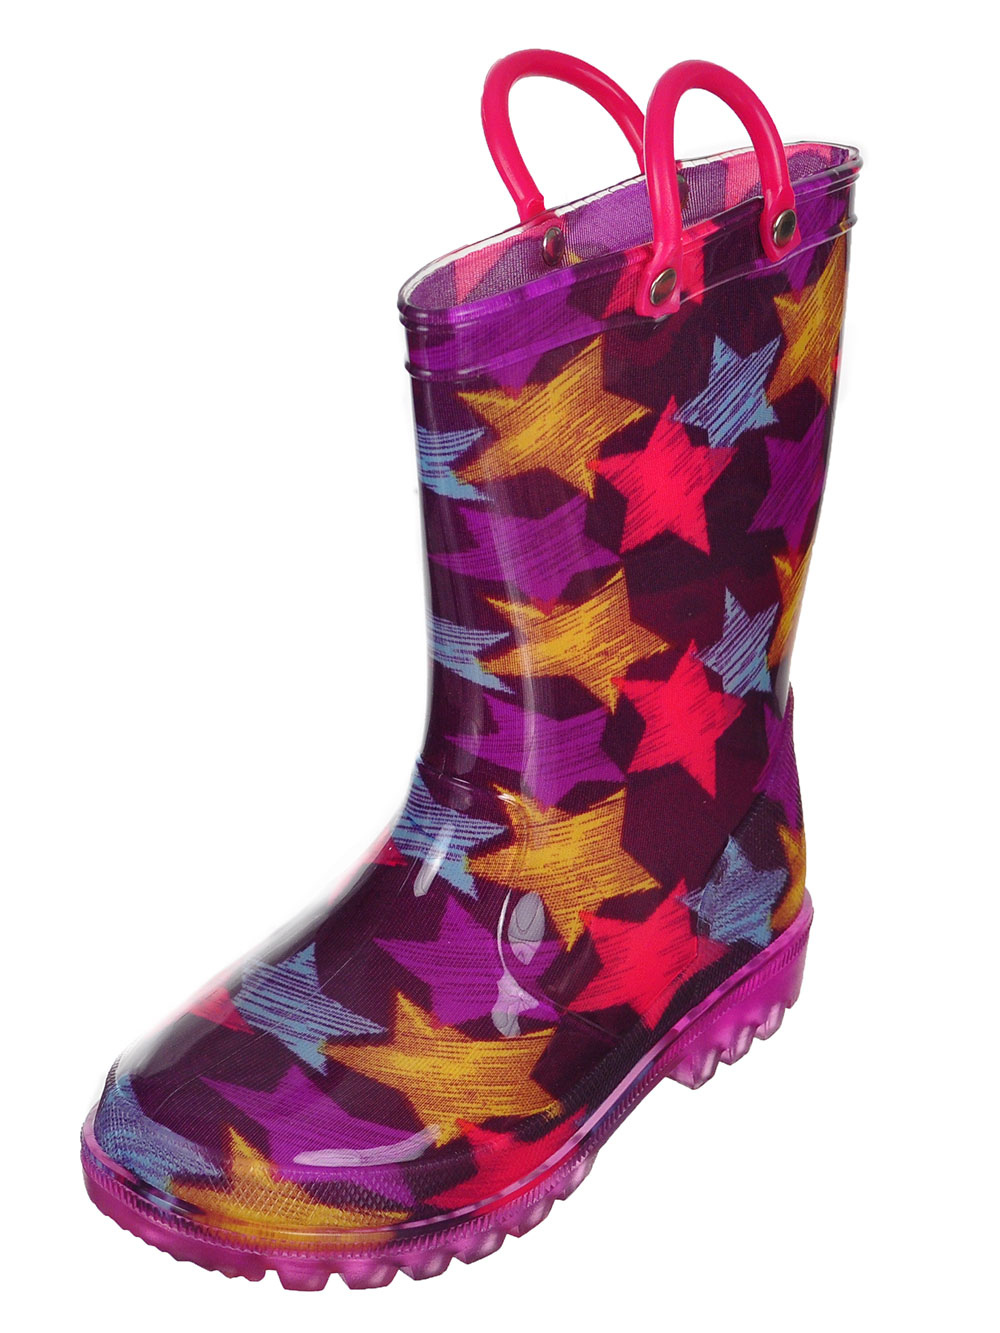 Girls' Light-Up Rubber Rain Boots